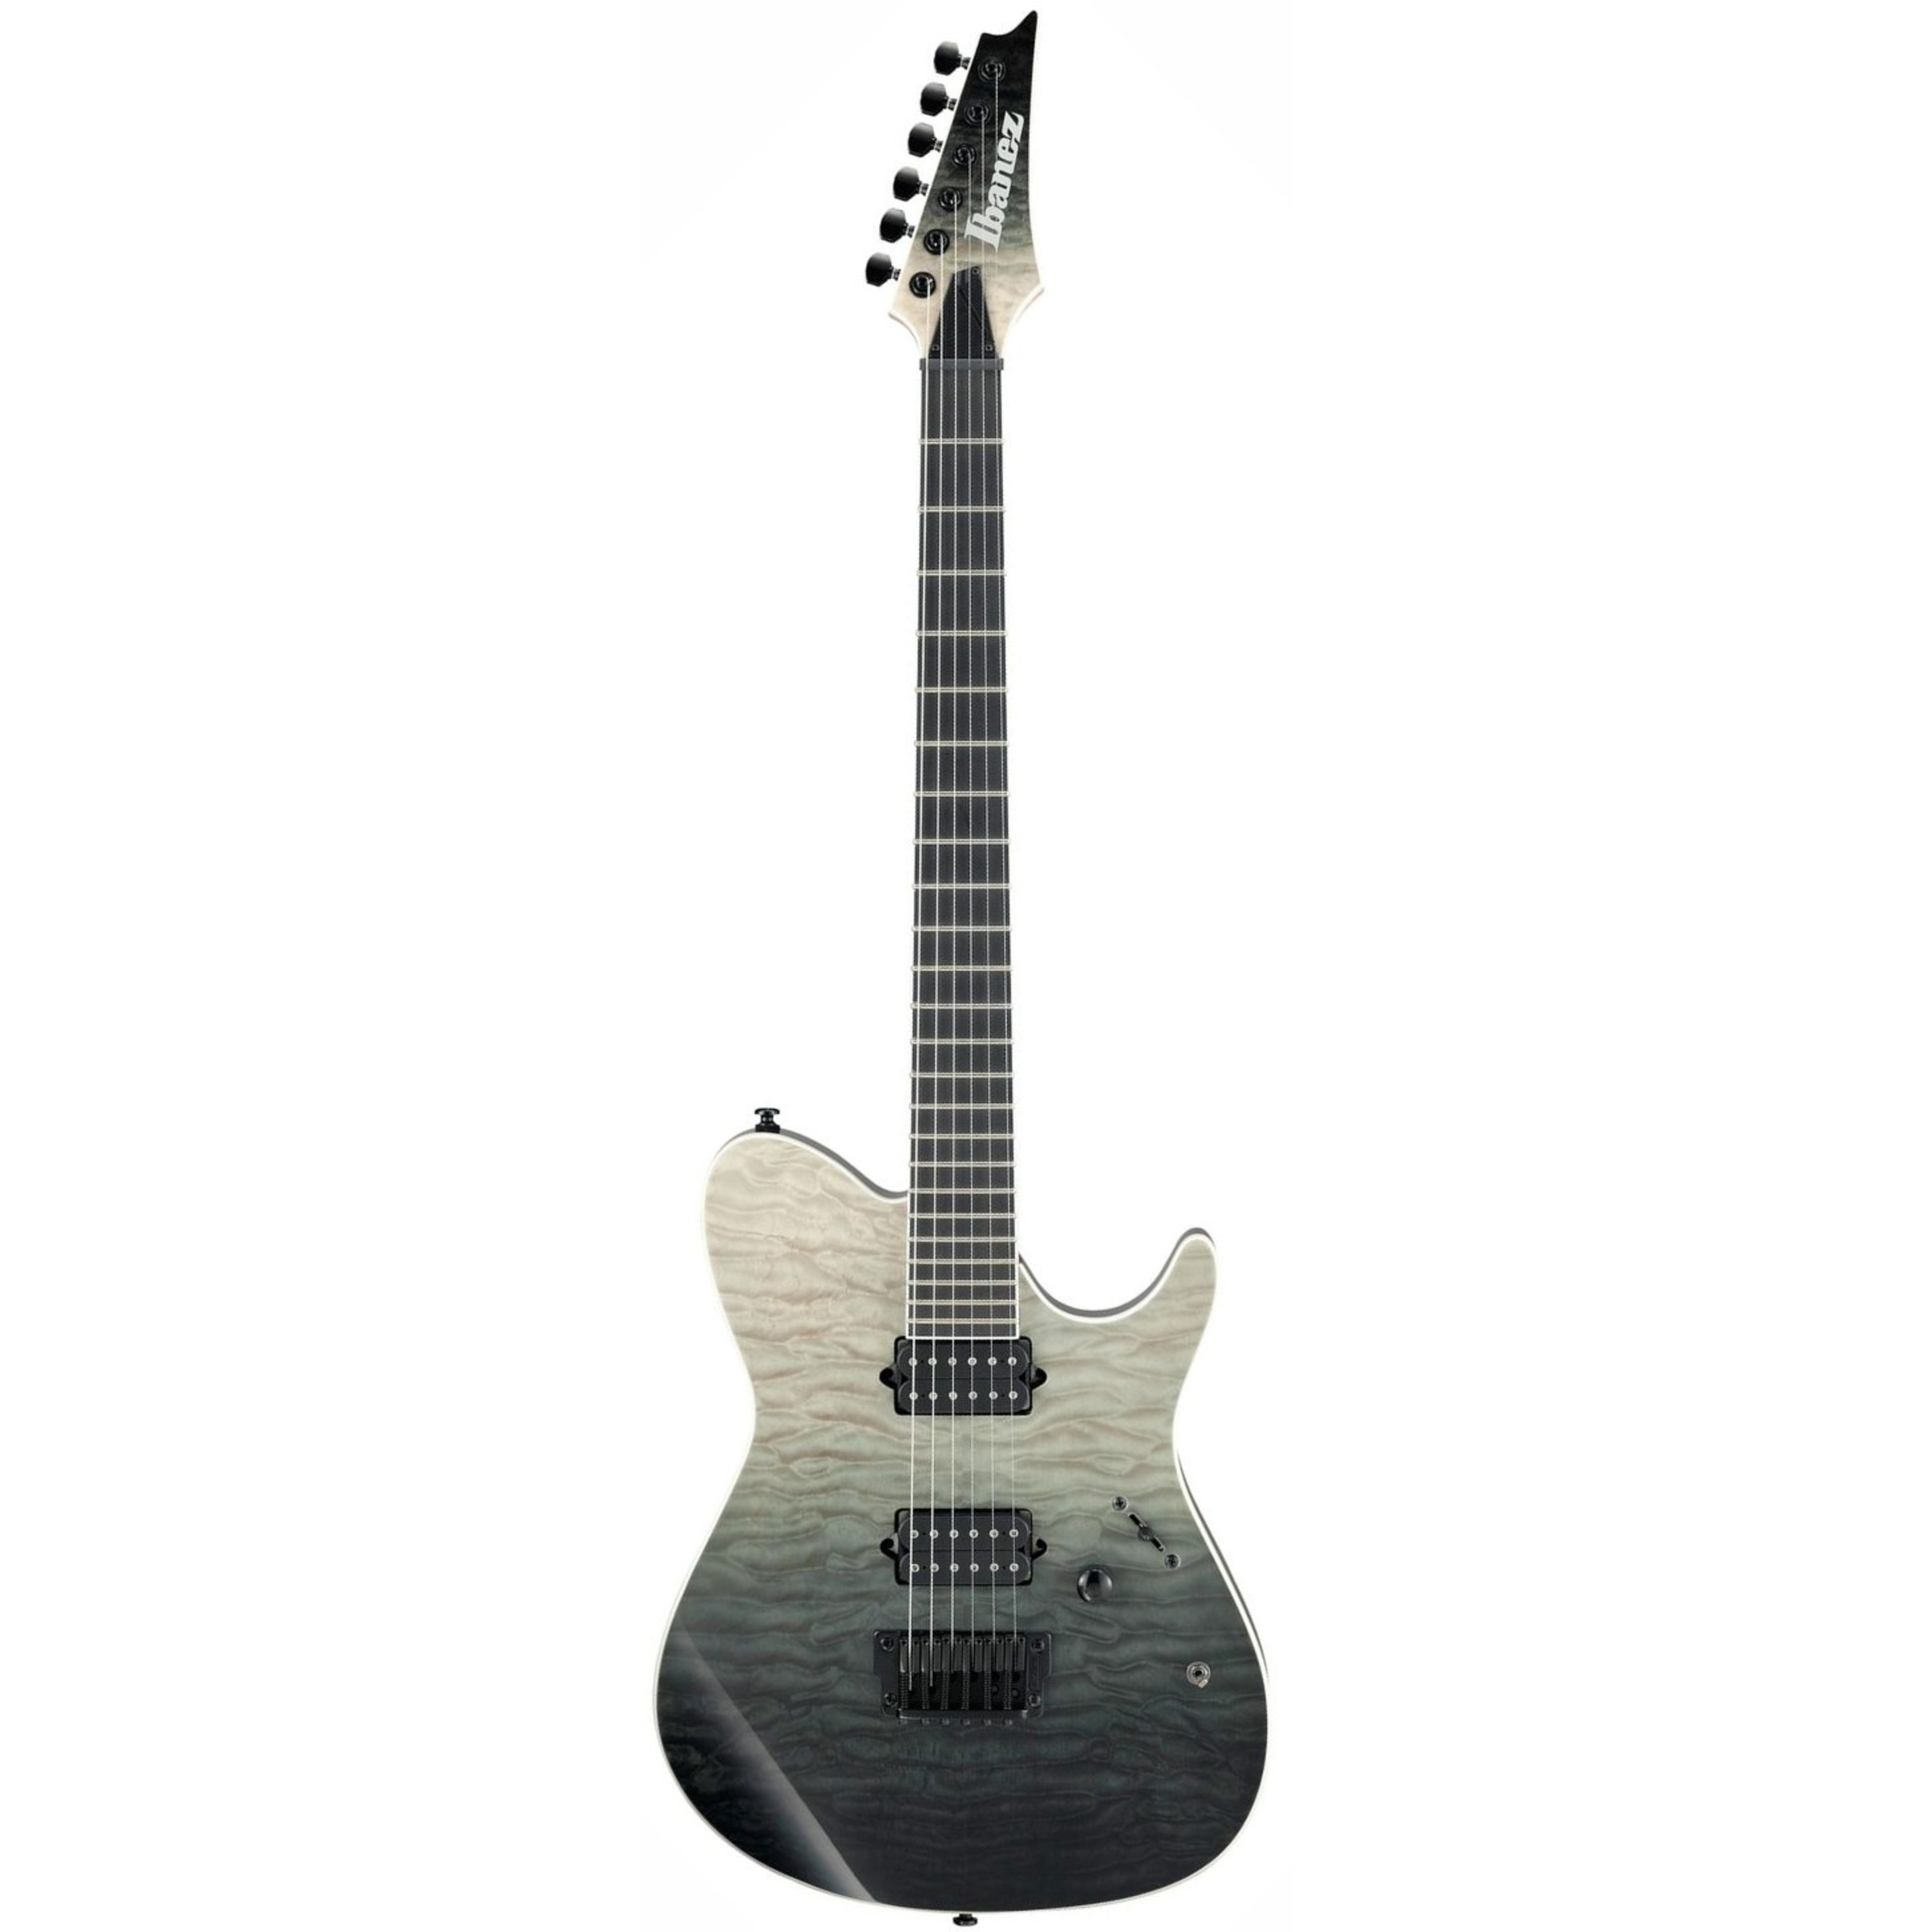 ibanez frix6fdqm iron label electric guitar black mirage gradation giggear. Black Bedroom Furniture Sets. Home Design Ideas